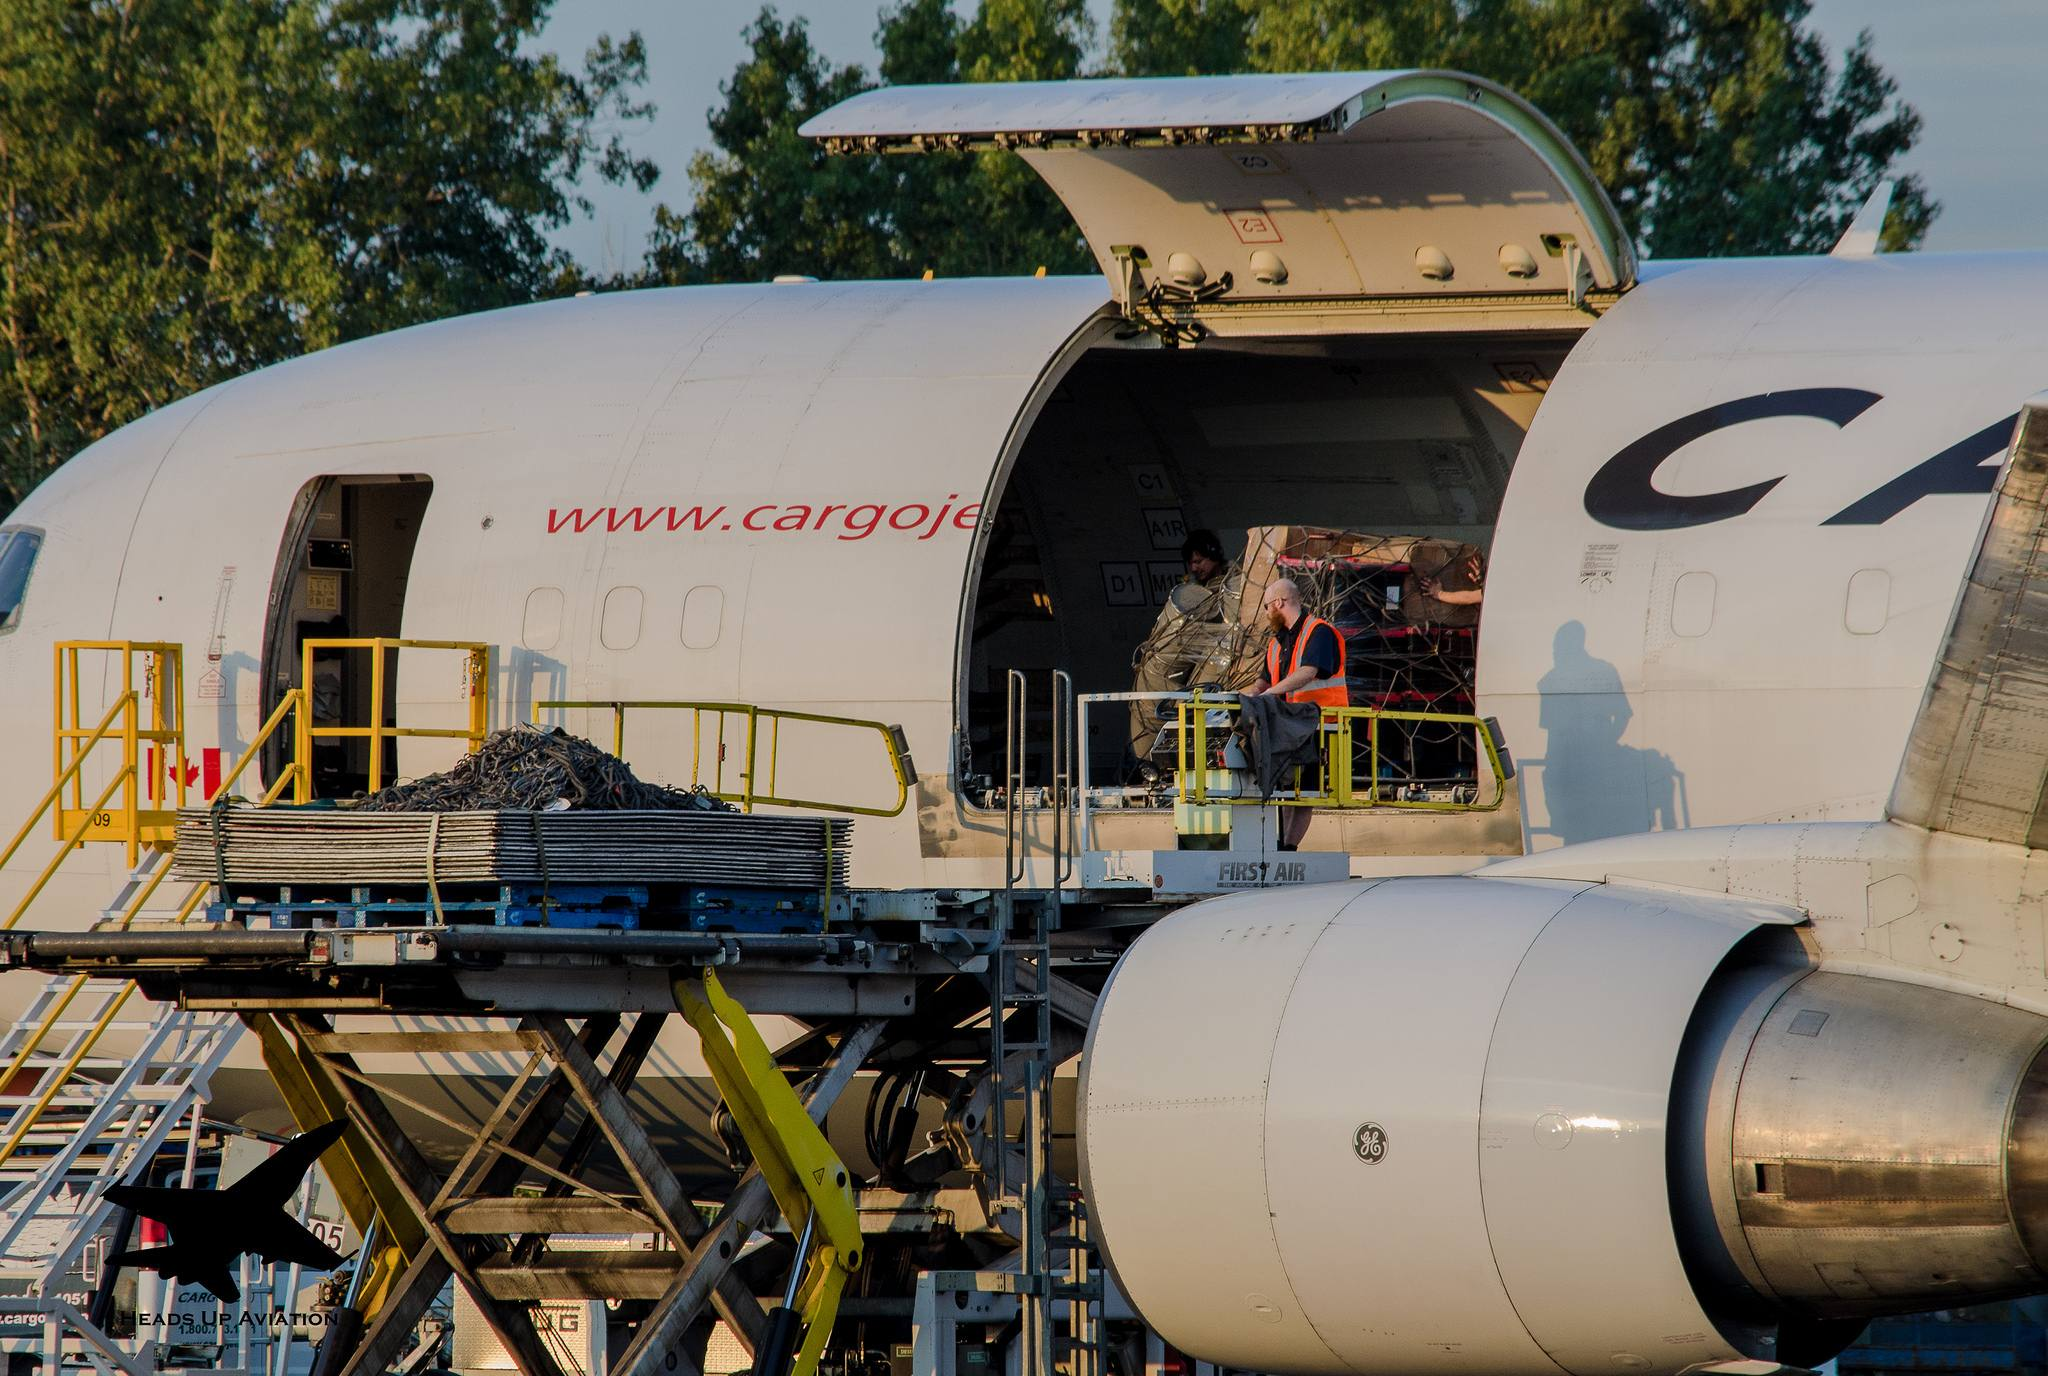 C-GKLY Cargojet Boeing 767-223 par Heads Up Aviation sous (CC BY-NC-ND 2.0) https://www.flickr.com/photos/willc33/20807806516/ https://creativecommons.org/licenses/by-nc-nd/2.0/